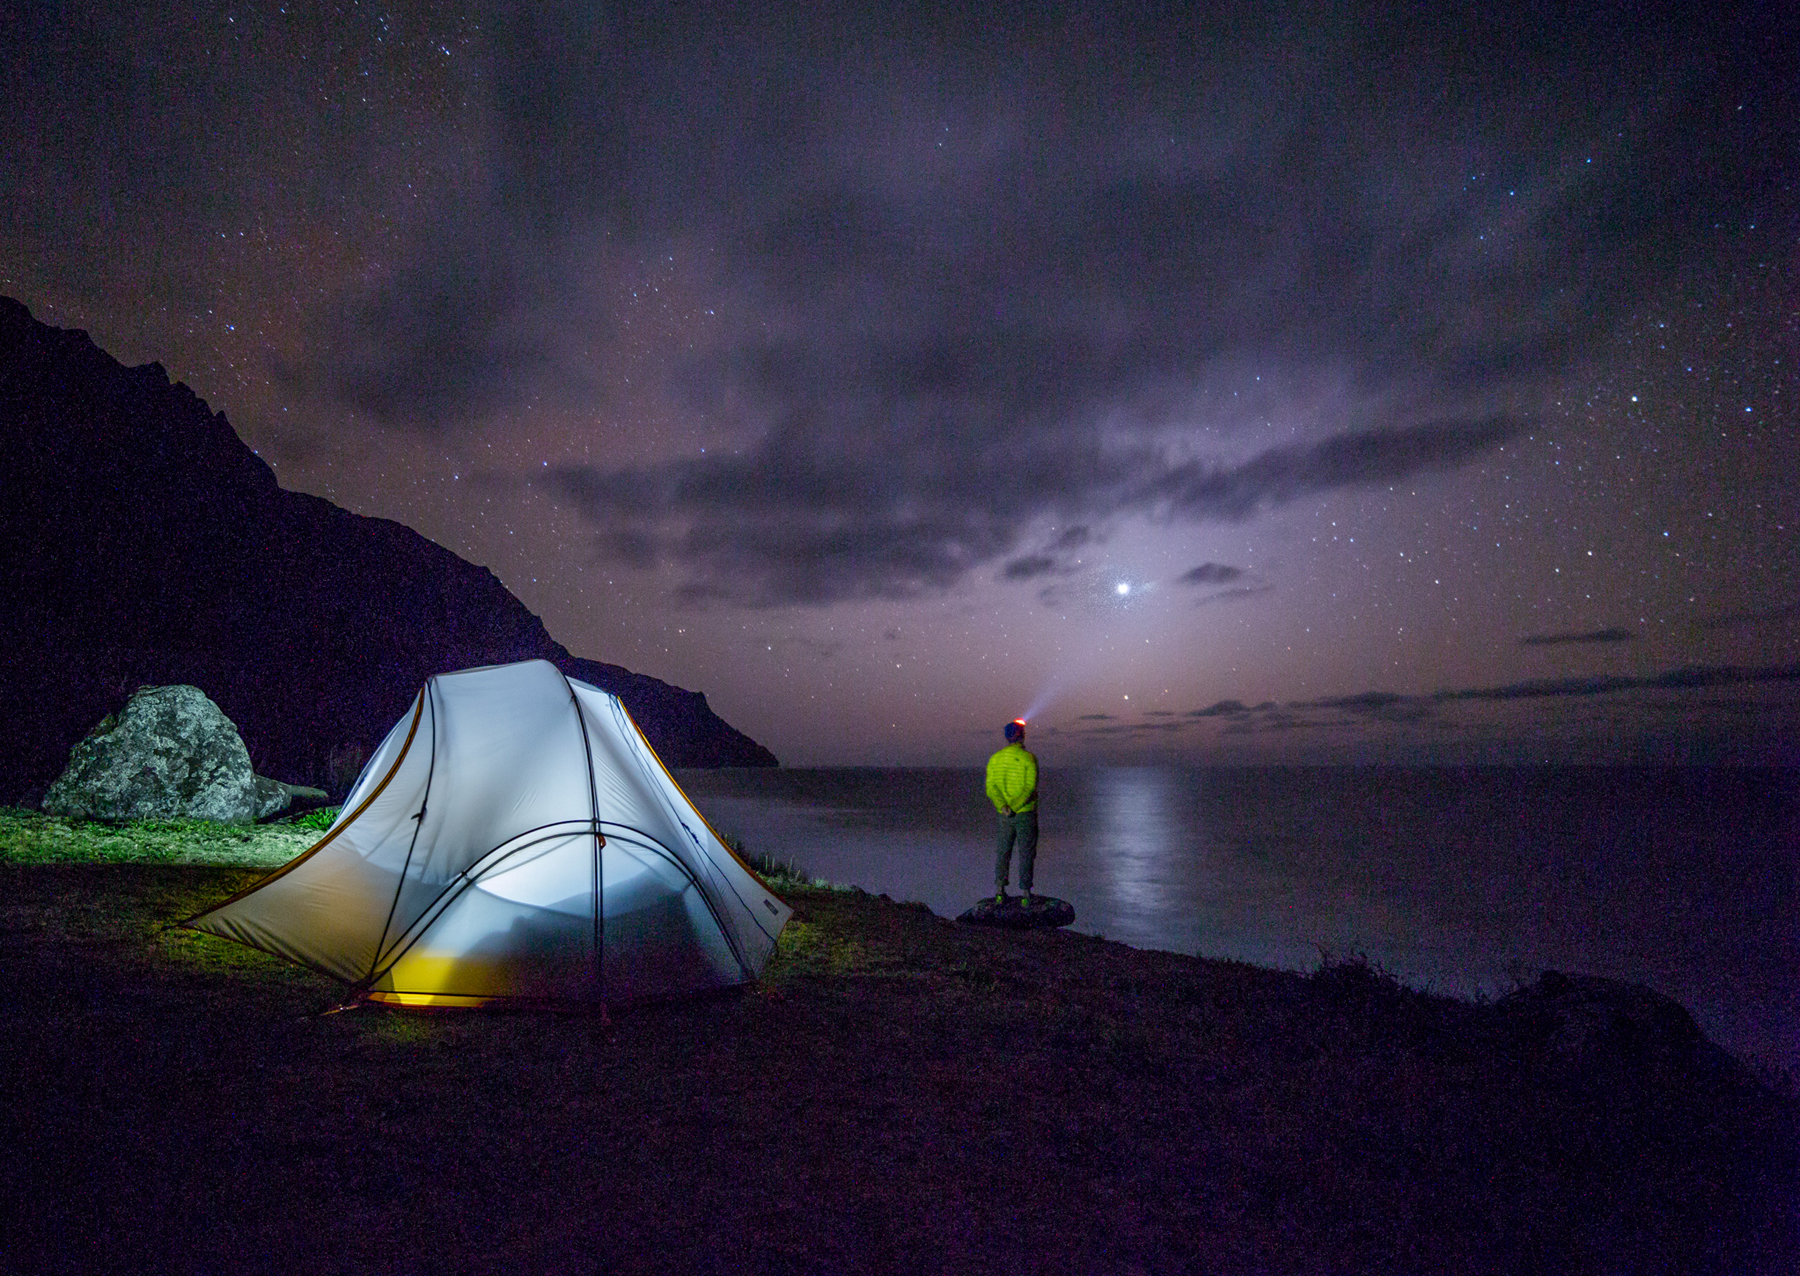 The night sky and small camping tents 52200